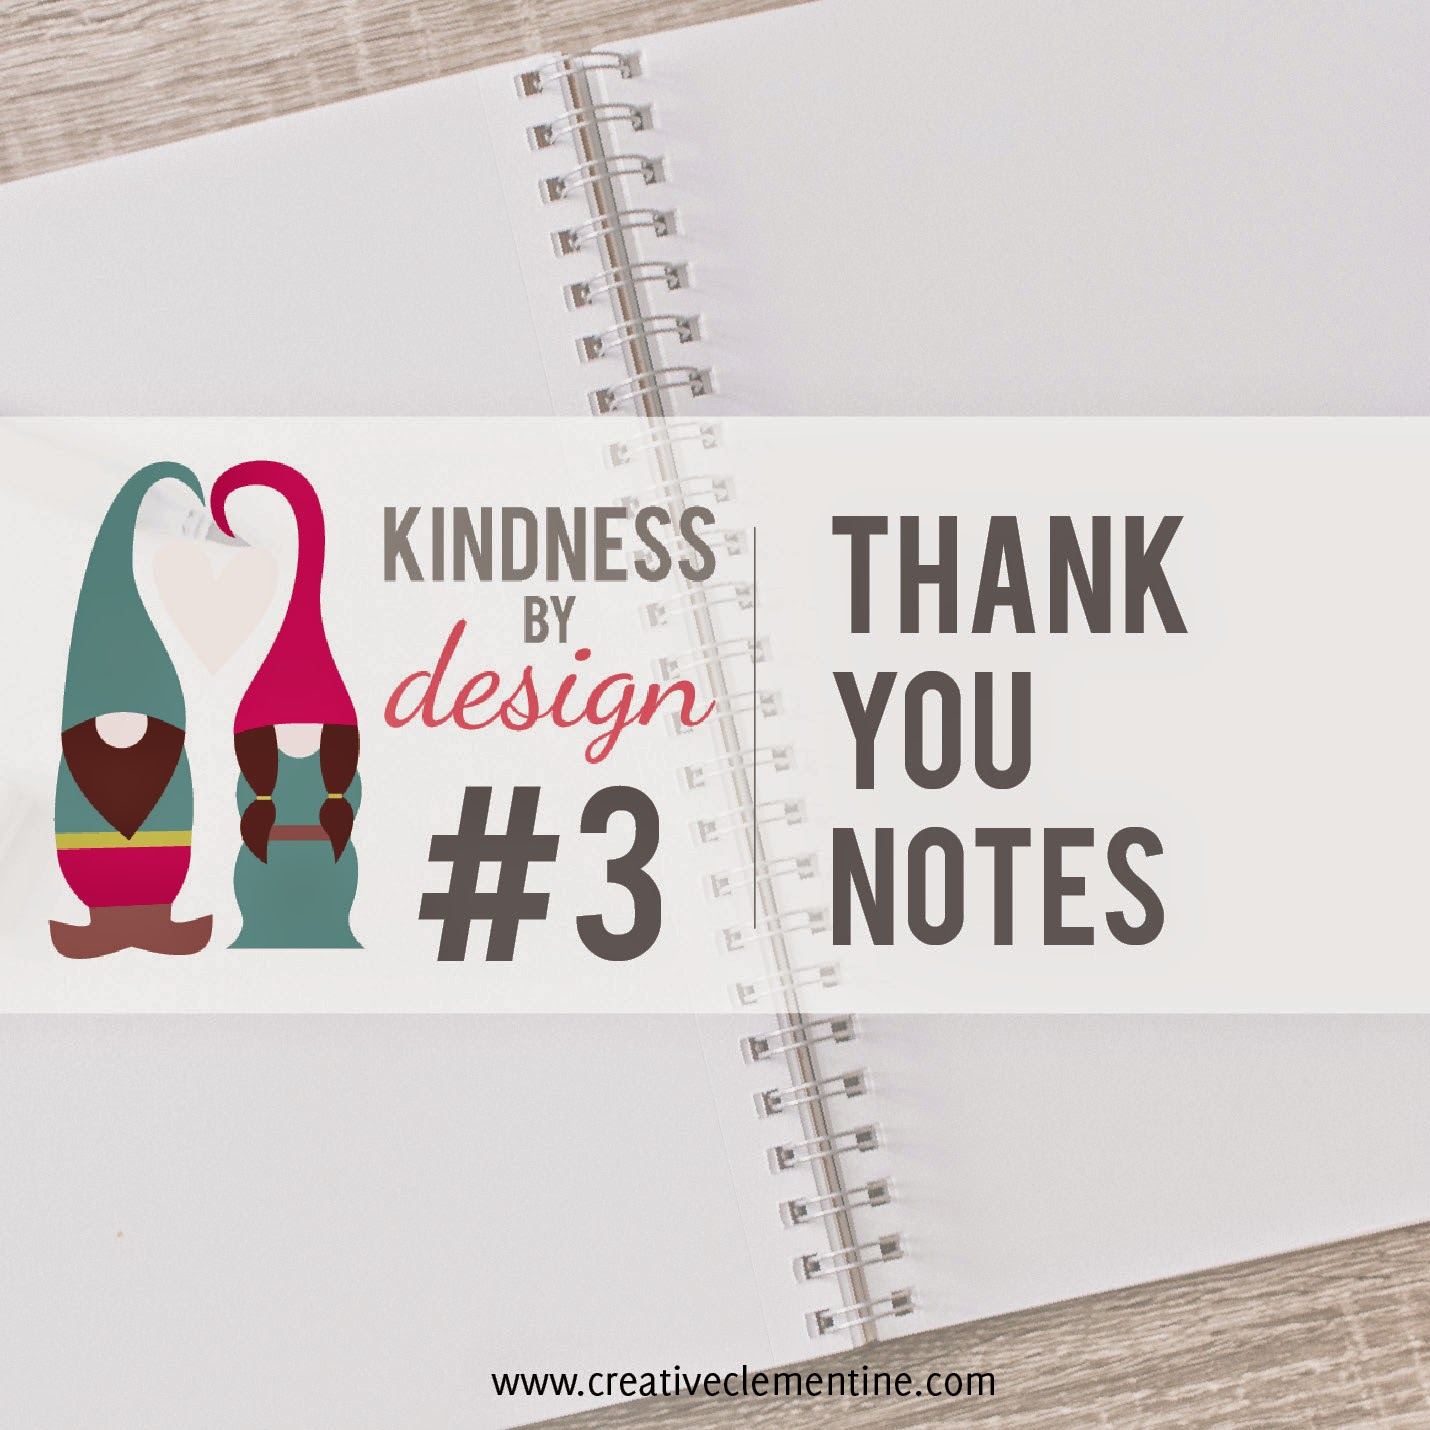 Thank You Notes. {Kindness by Design: Planning towards a kinder life. Blog series via CreativeClementine.com}